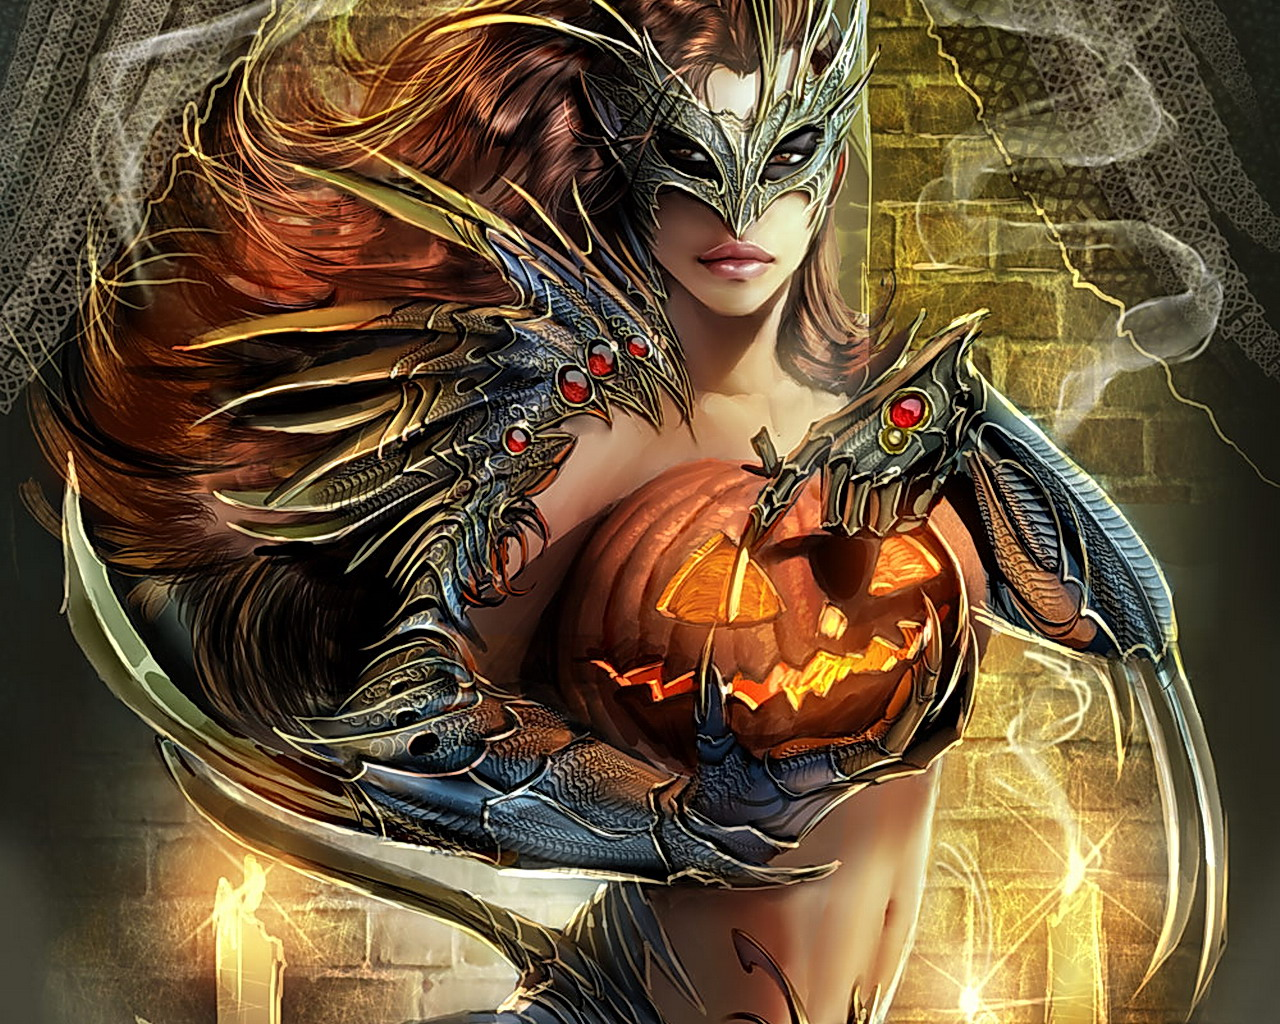 download free halloween fairy pictures hd wallpapers facebook and whatsapp - Free Halloween Pictures To Download